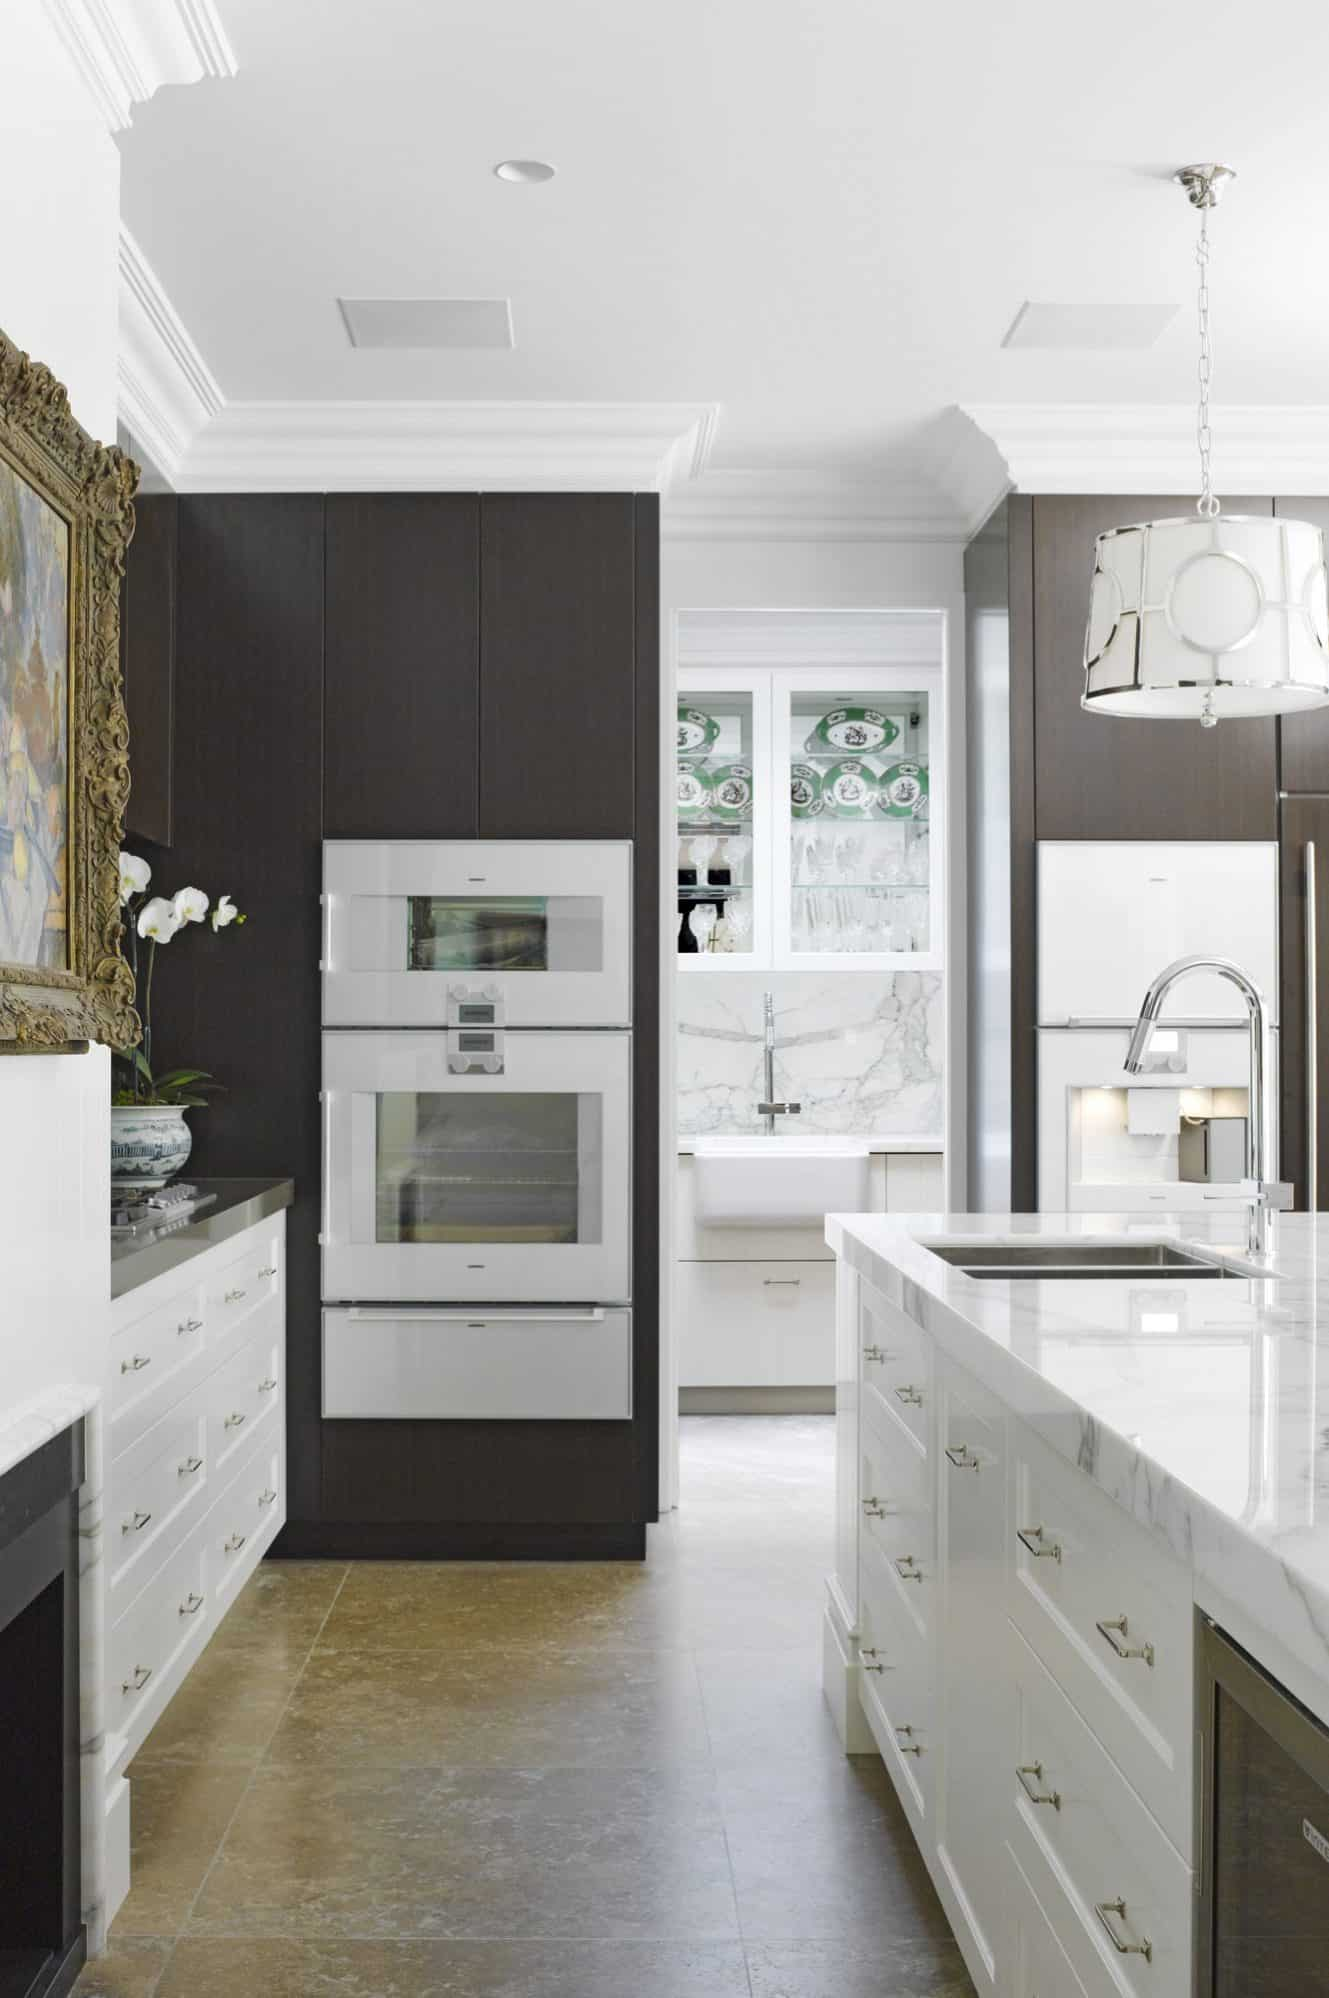 The kitchen includes a beautifully detailed scullery